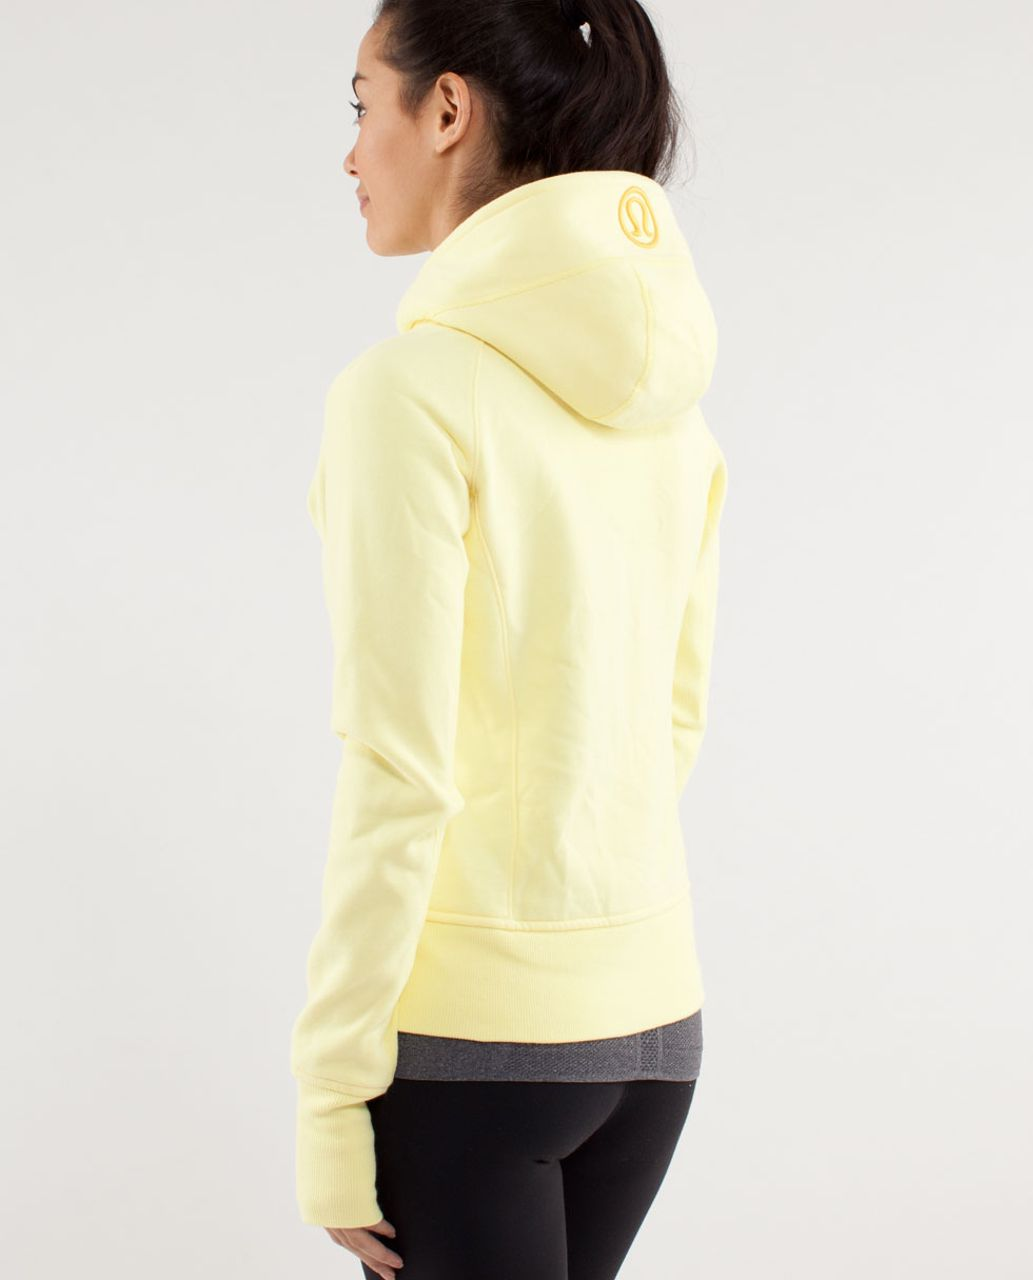 Lululemon Scuba Hoodie *Stretch (Lined Hood) - Mellow Lemon